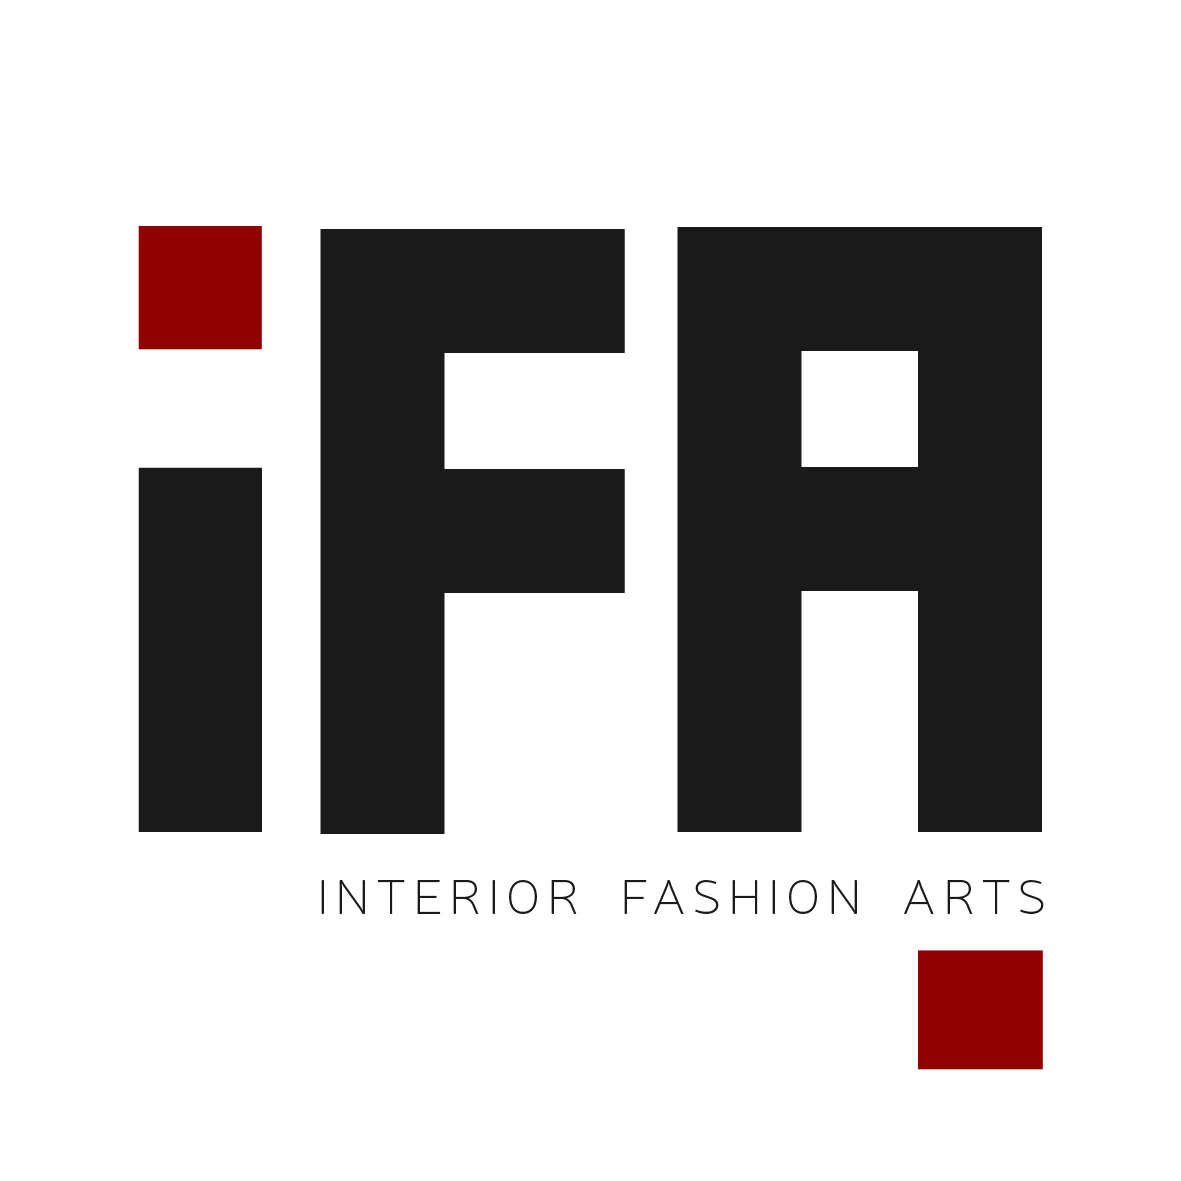 IFA – Interior Fashion Arts